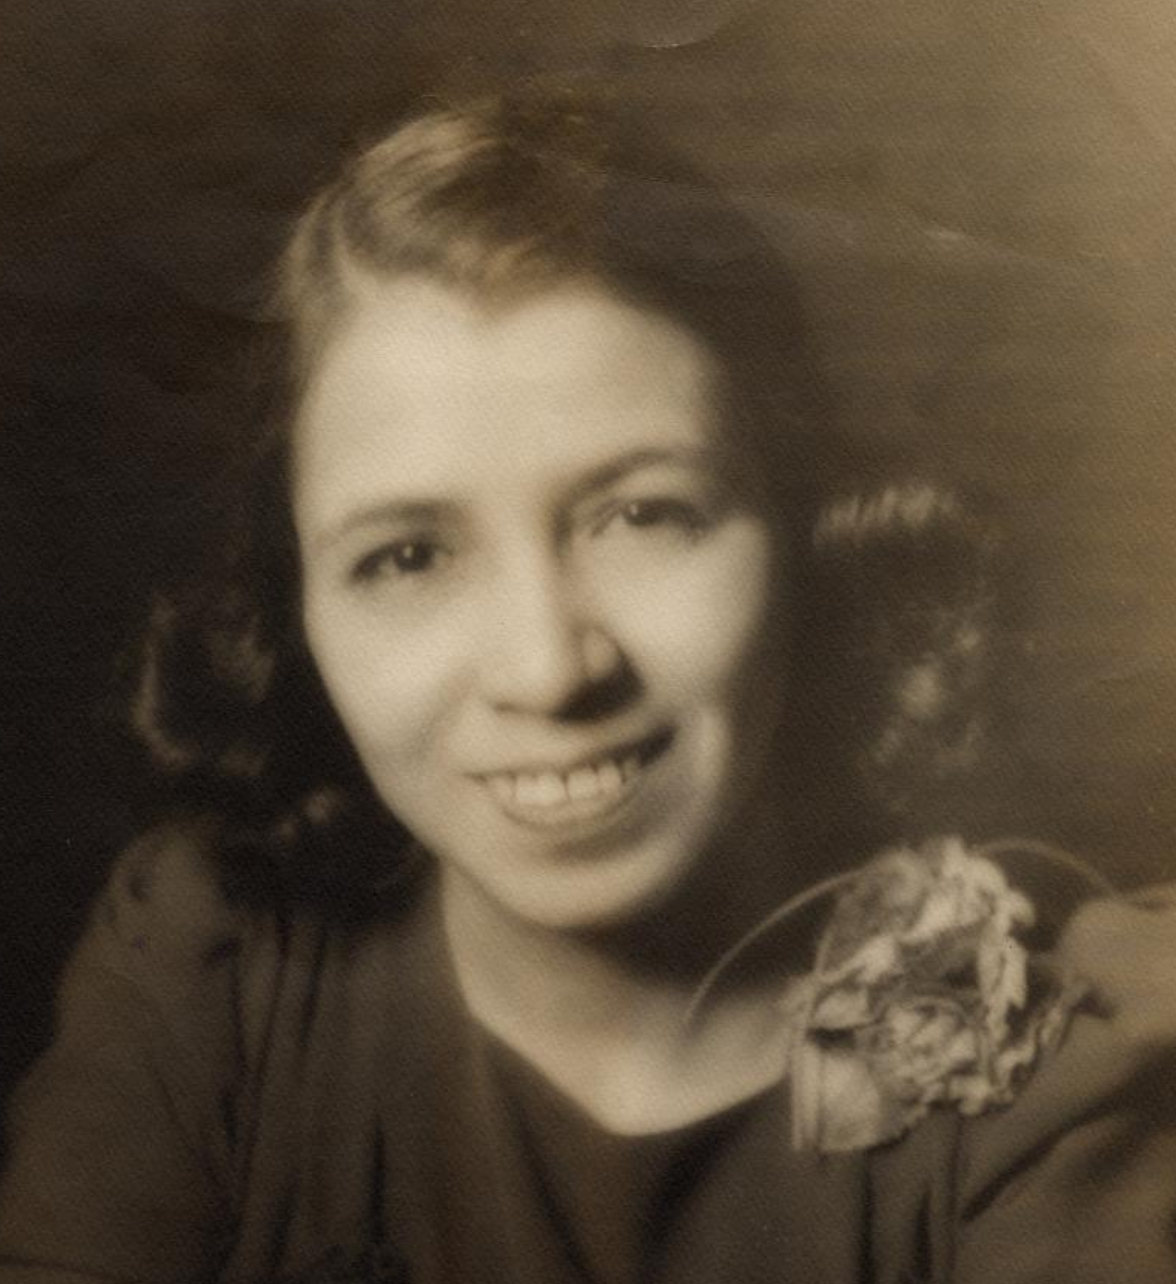 A circa 1930s headshot of Clotilde Arias, who worked in advertising in New York City and composed the Spanish translation of the Star-Spangled Banner that is  the only official translation of the national anthem allowed to be sung,  according to the Smithsonian Institution.